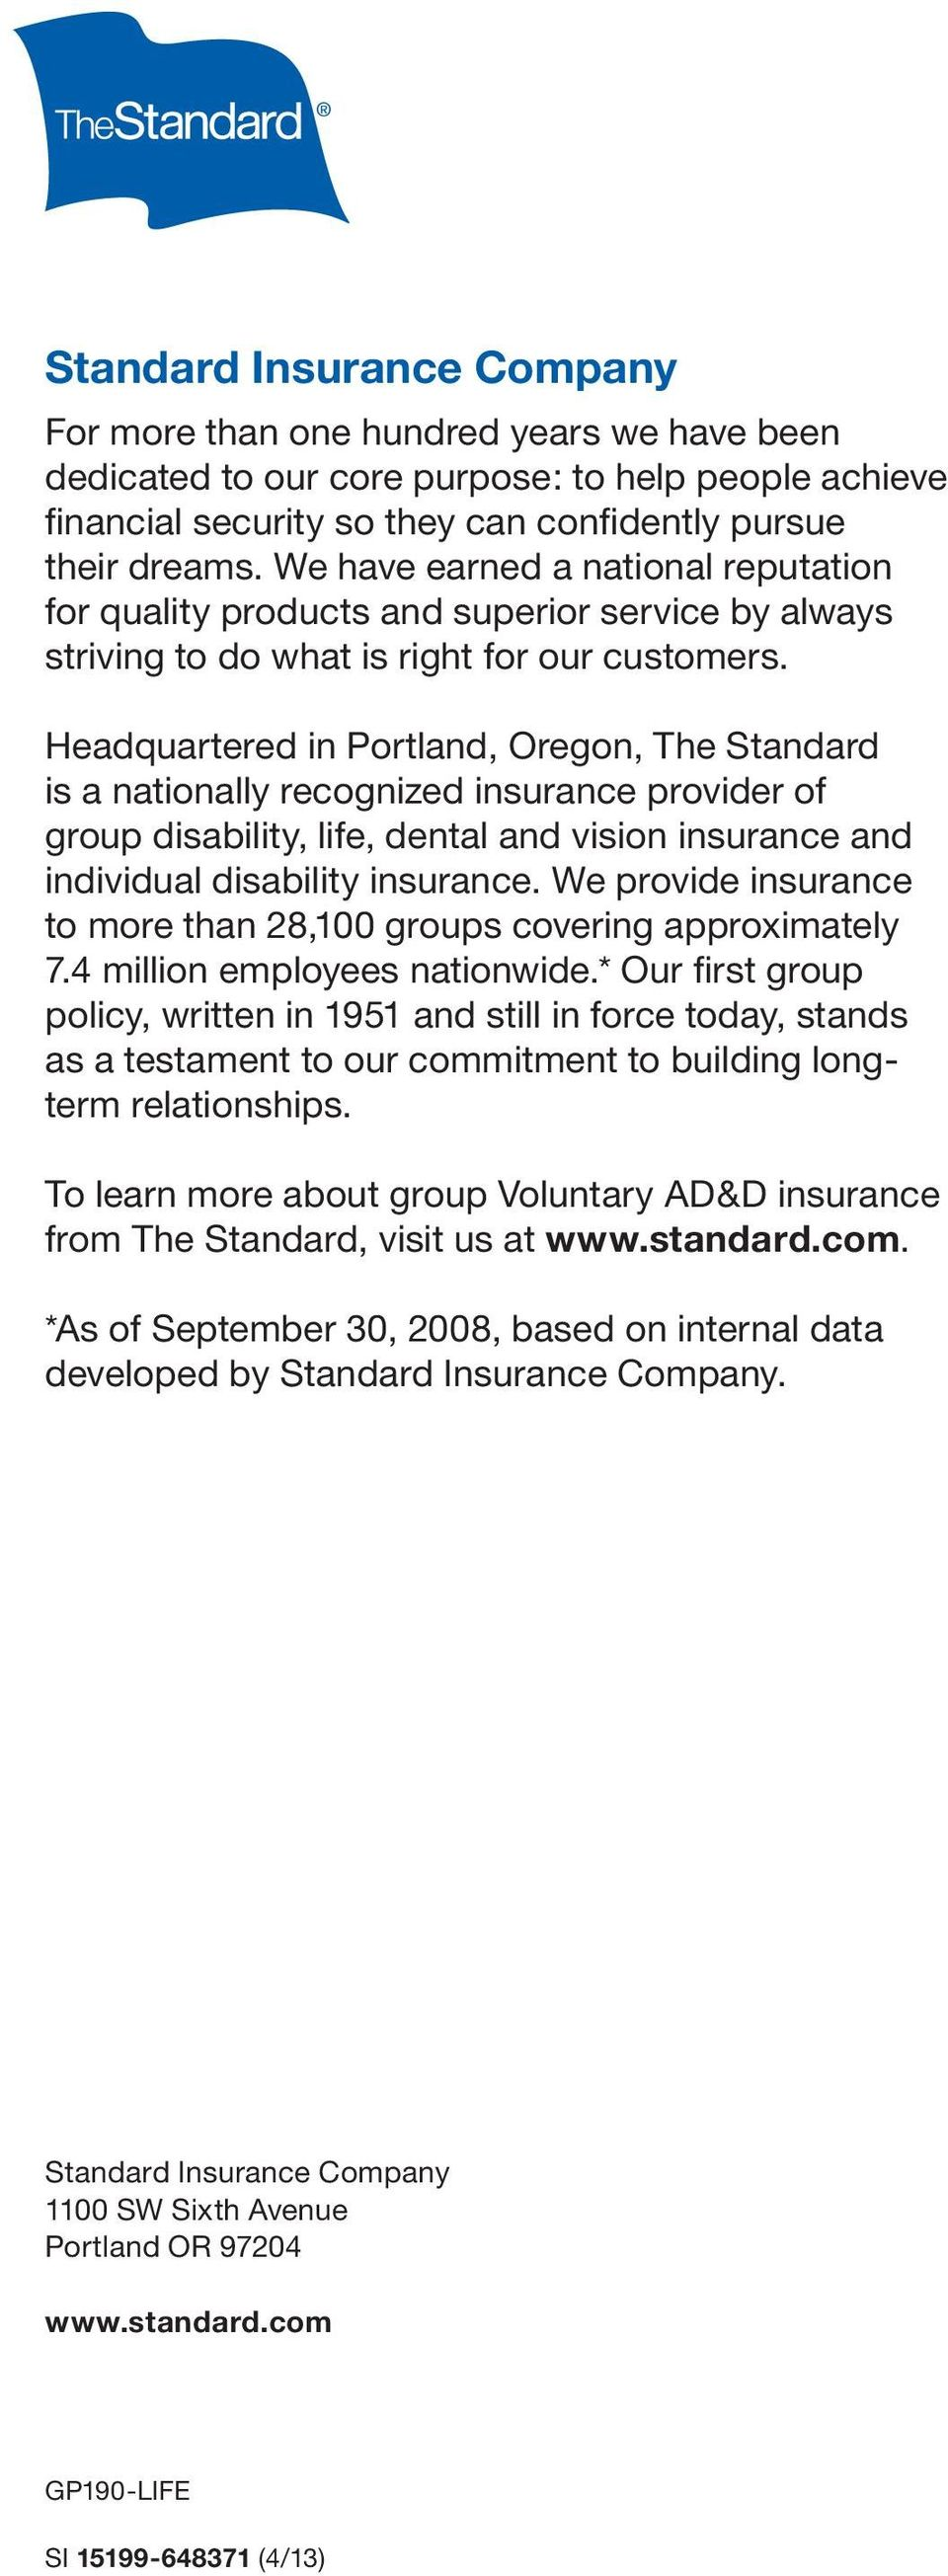 Headquartered in Portland, Oregon, The Standard is a nationally recognized insurance provider of group disability, life, dental and vision insurance and individual disability insurance.